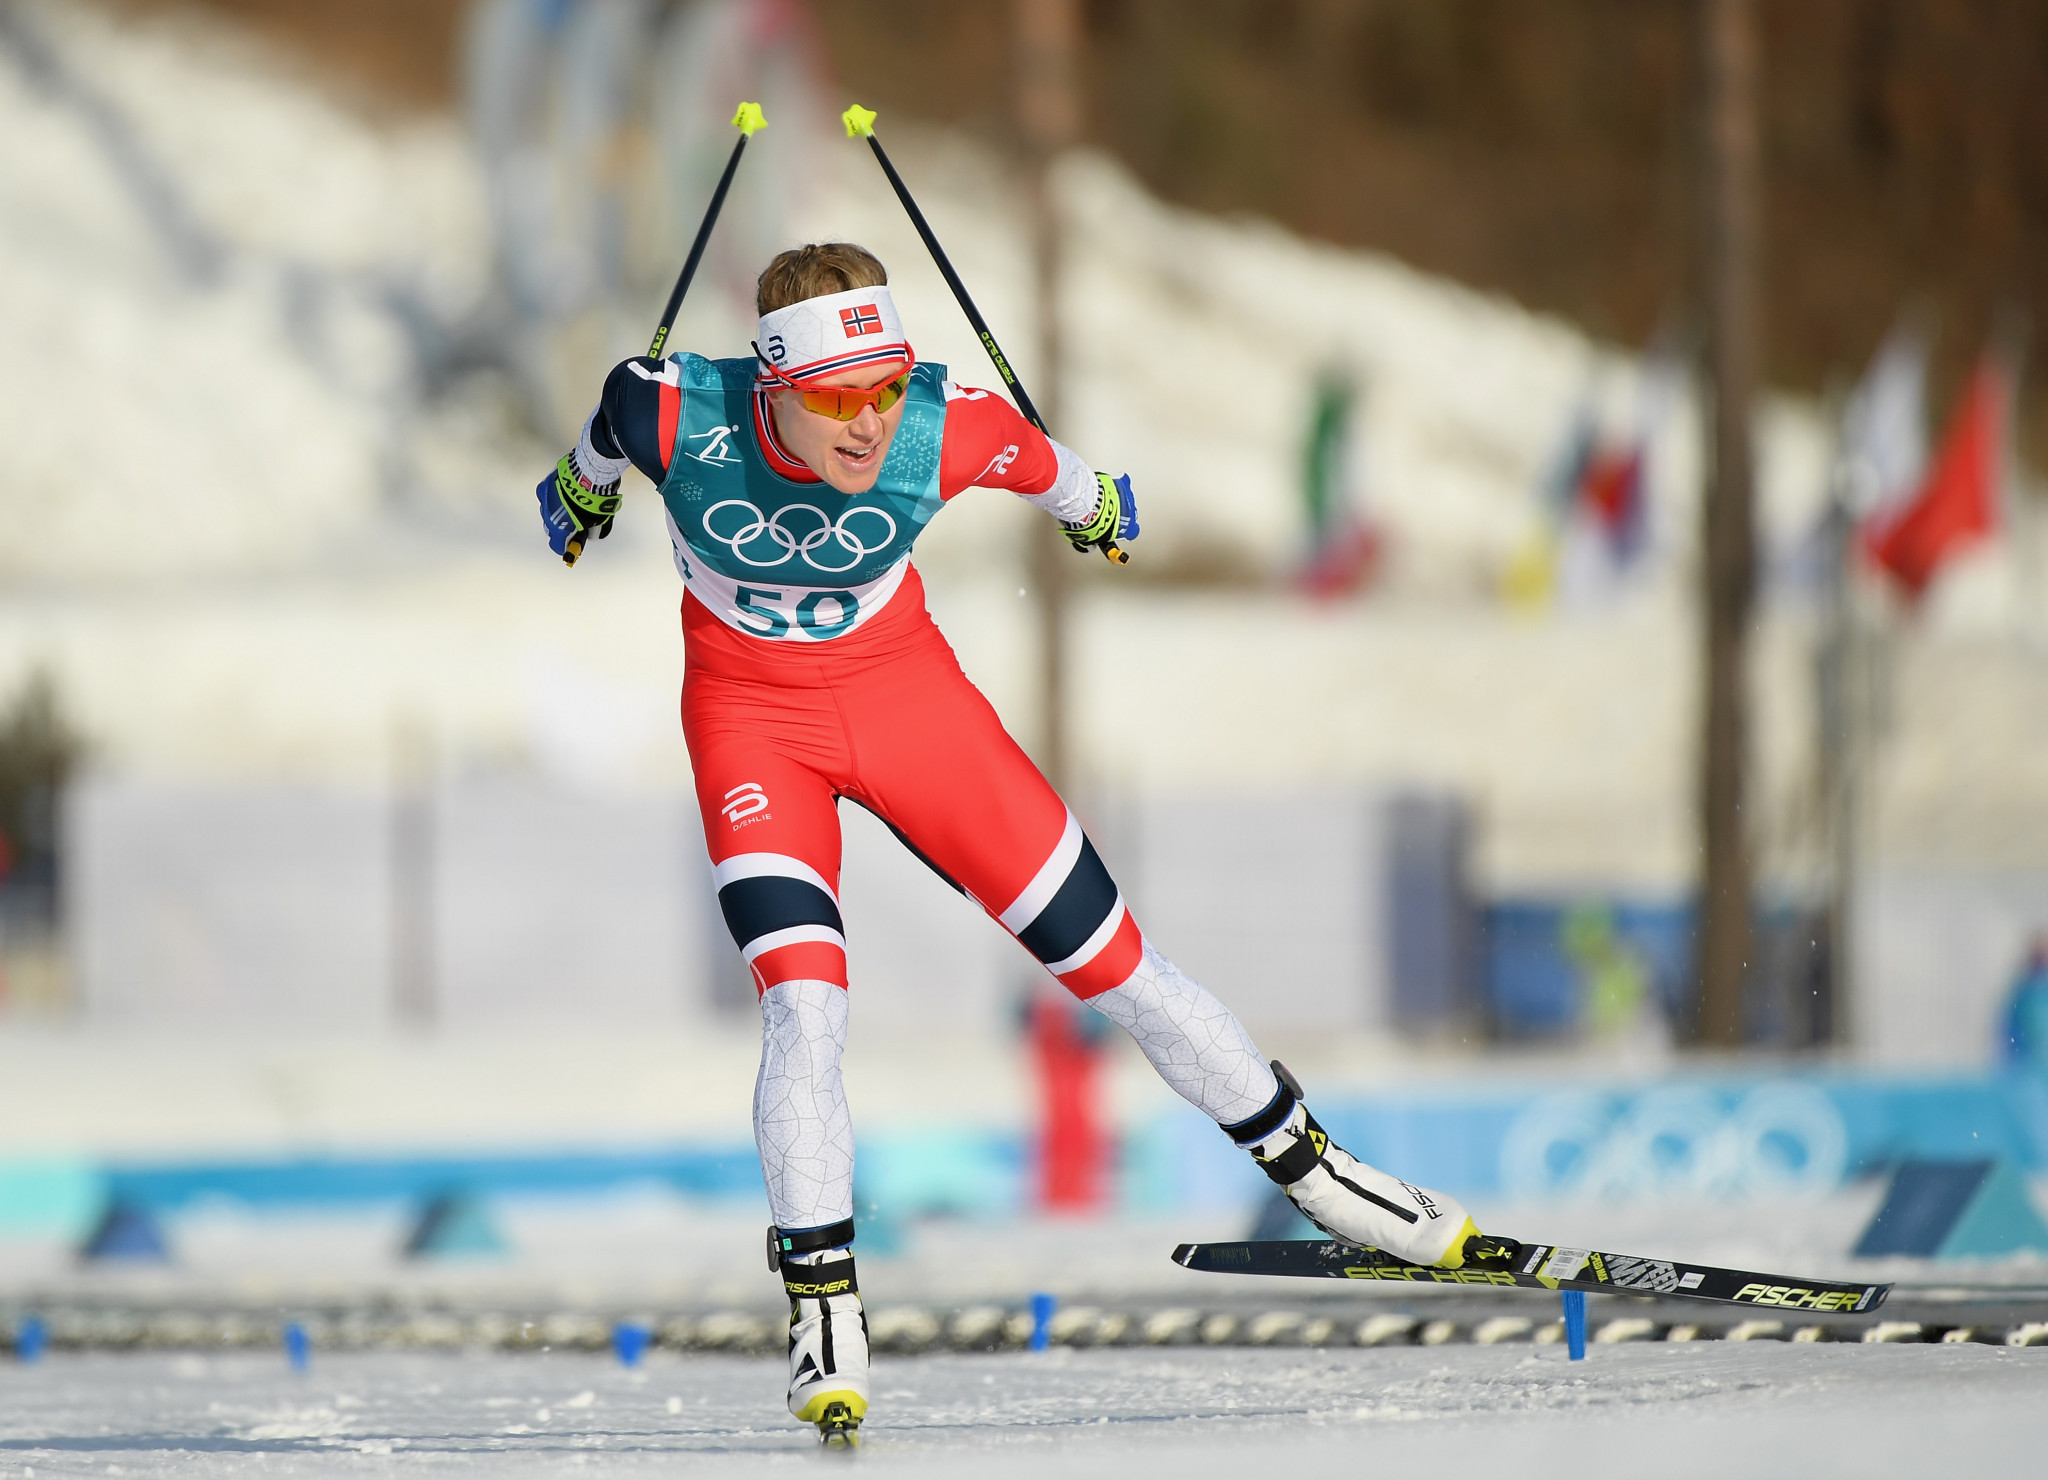 Norwegian Ragnhild Haga produced a storming second lap to clinch the women's 10 kilometres freesyle title ©Getty Images